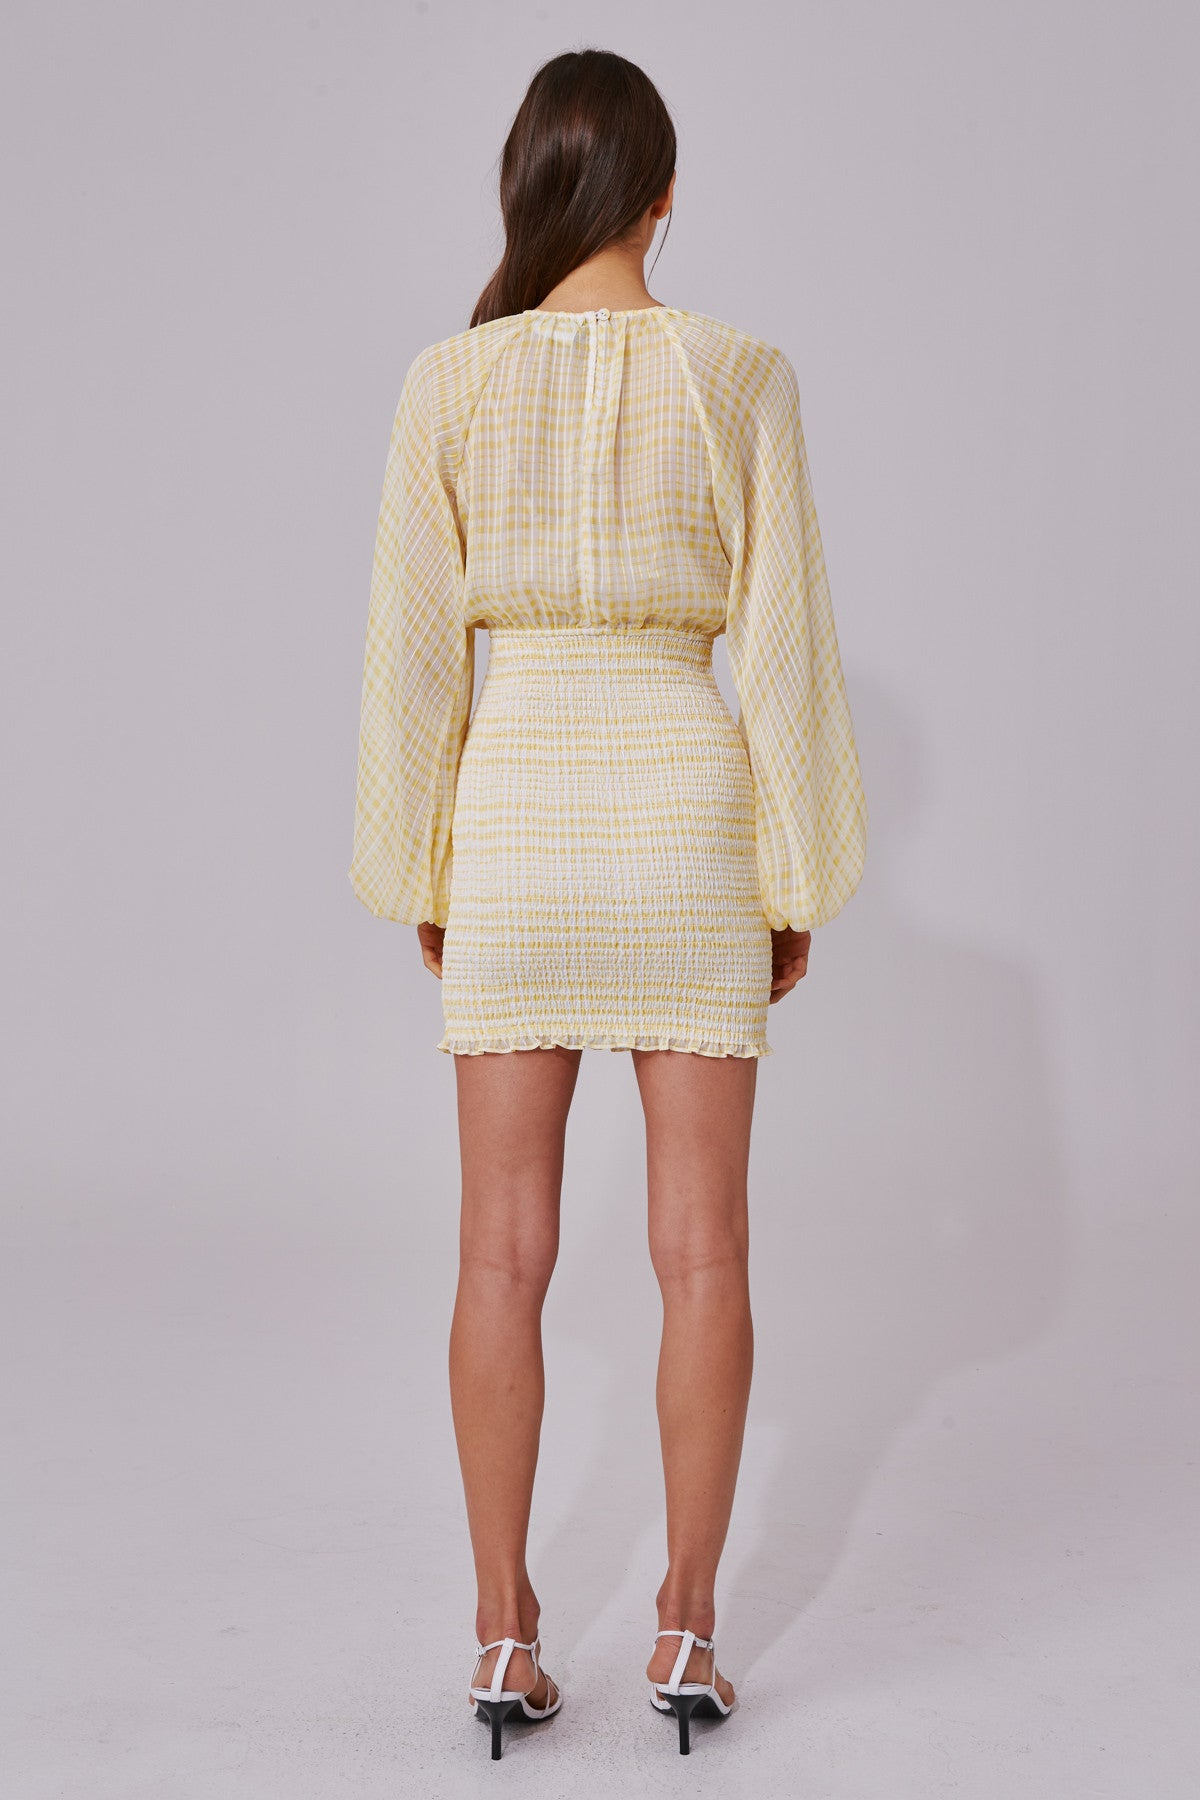 STEALING SUNSHINE LONG SLEEVE DRESS yellow check